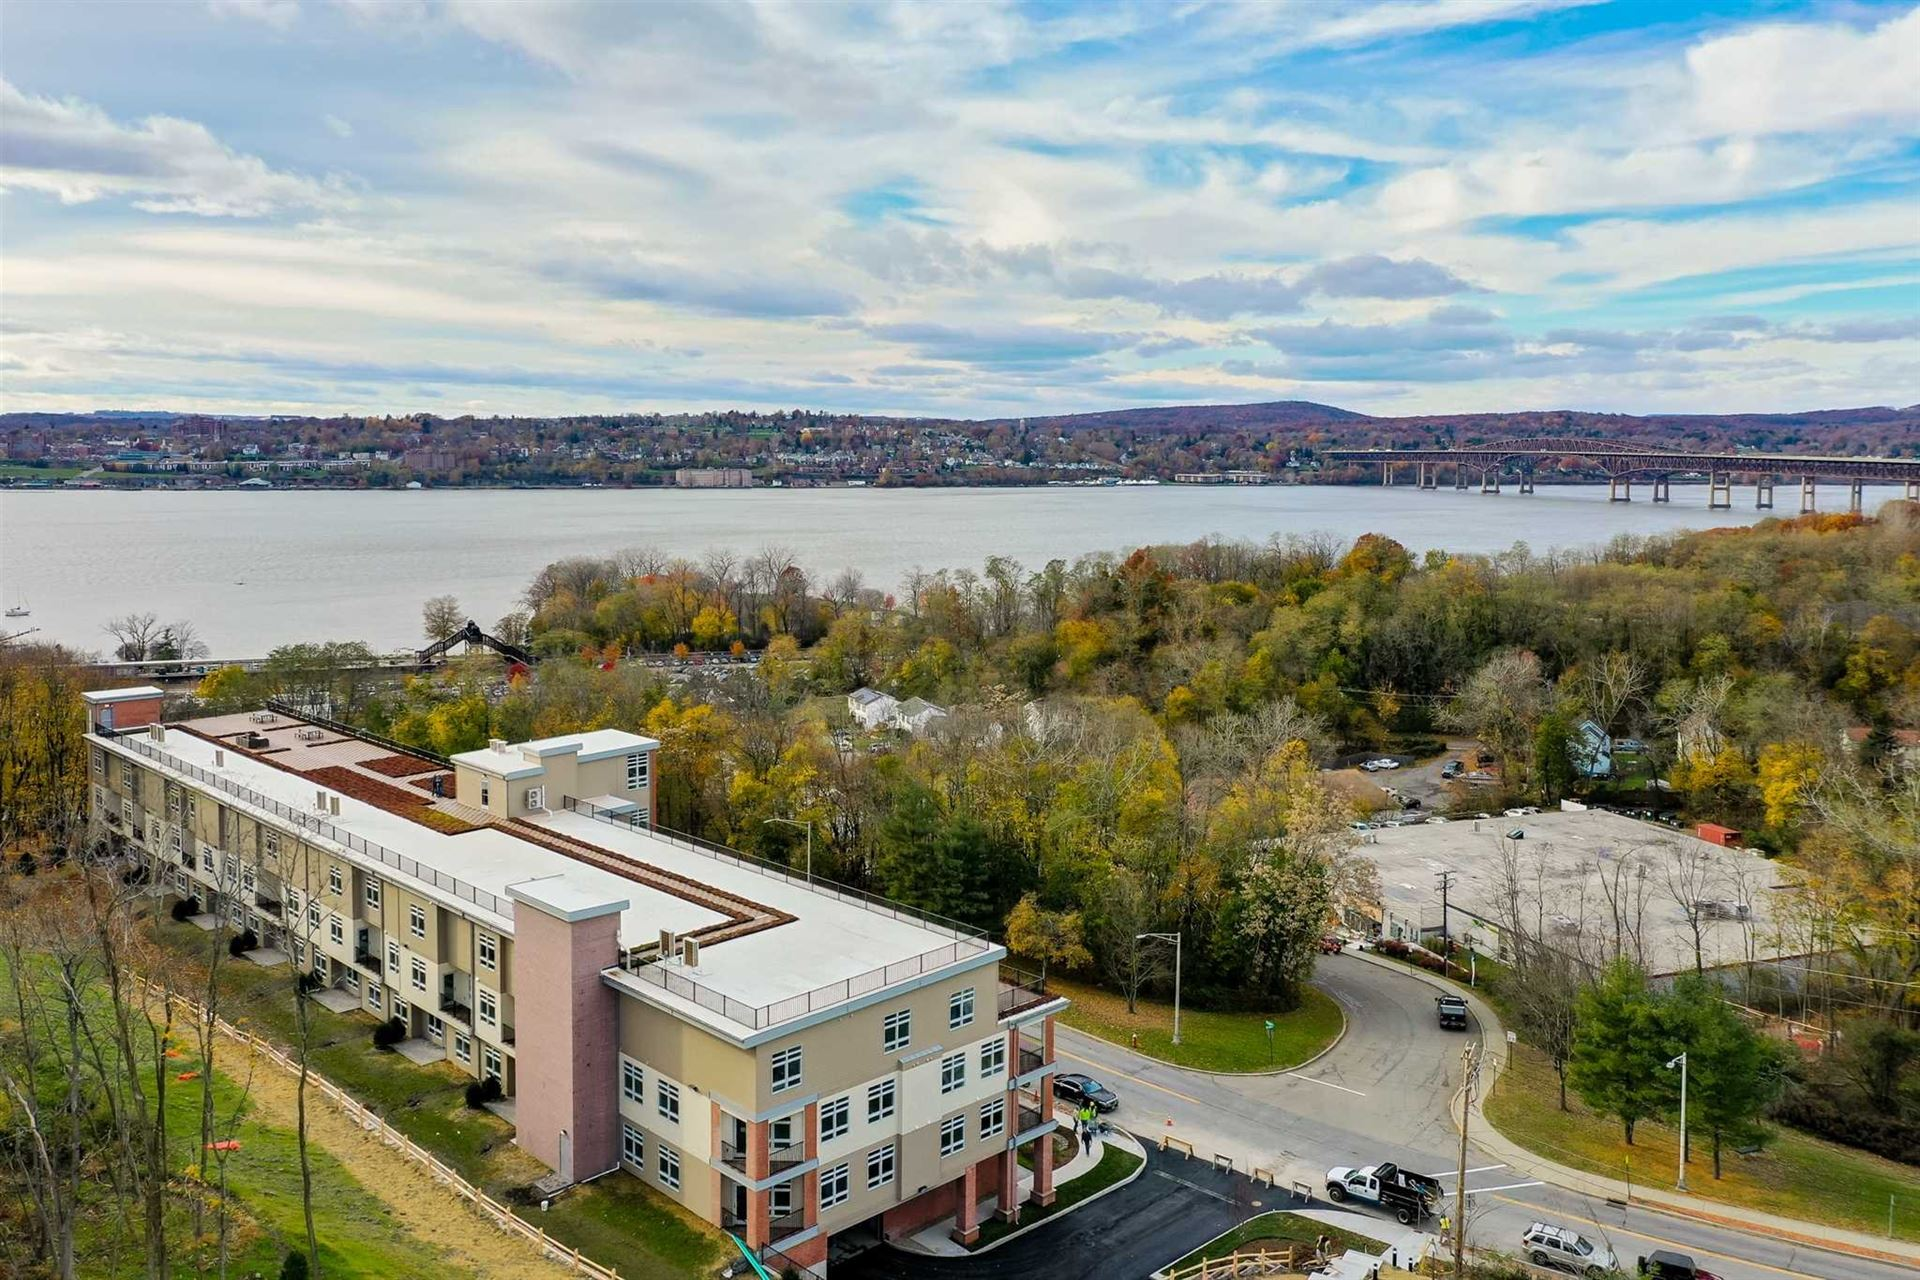 30 BEEKMAN PH1, Beacon, NY 12508 - #: 397381